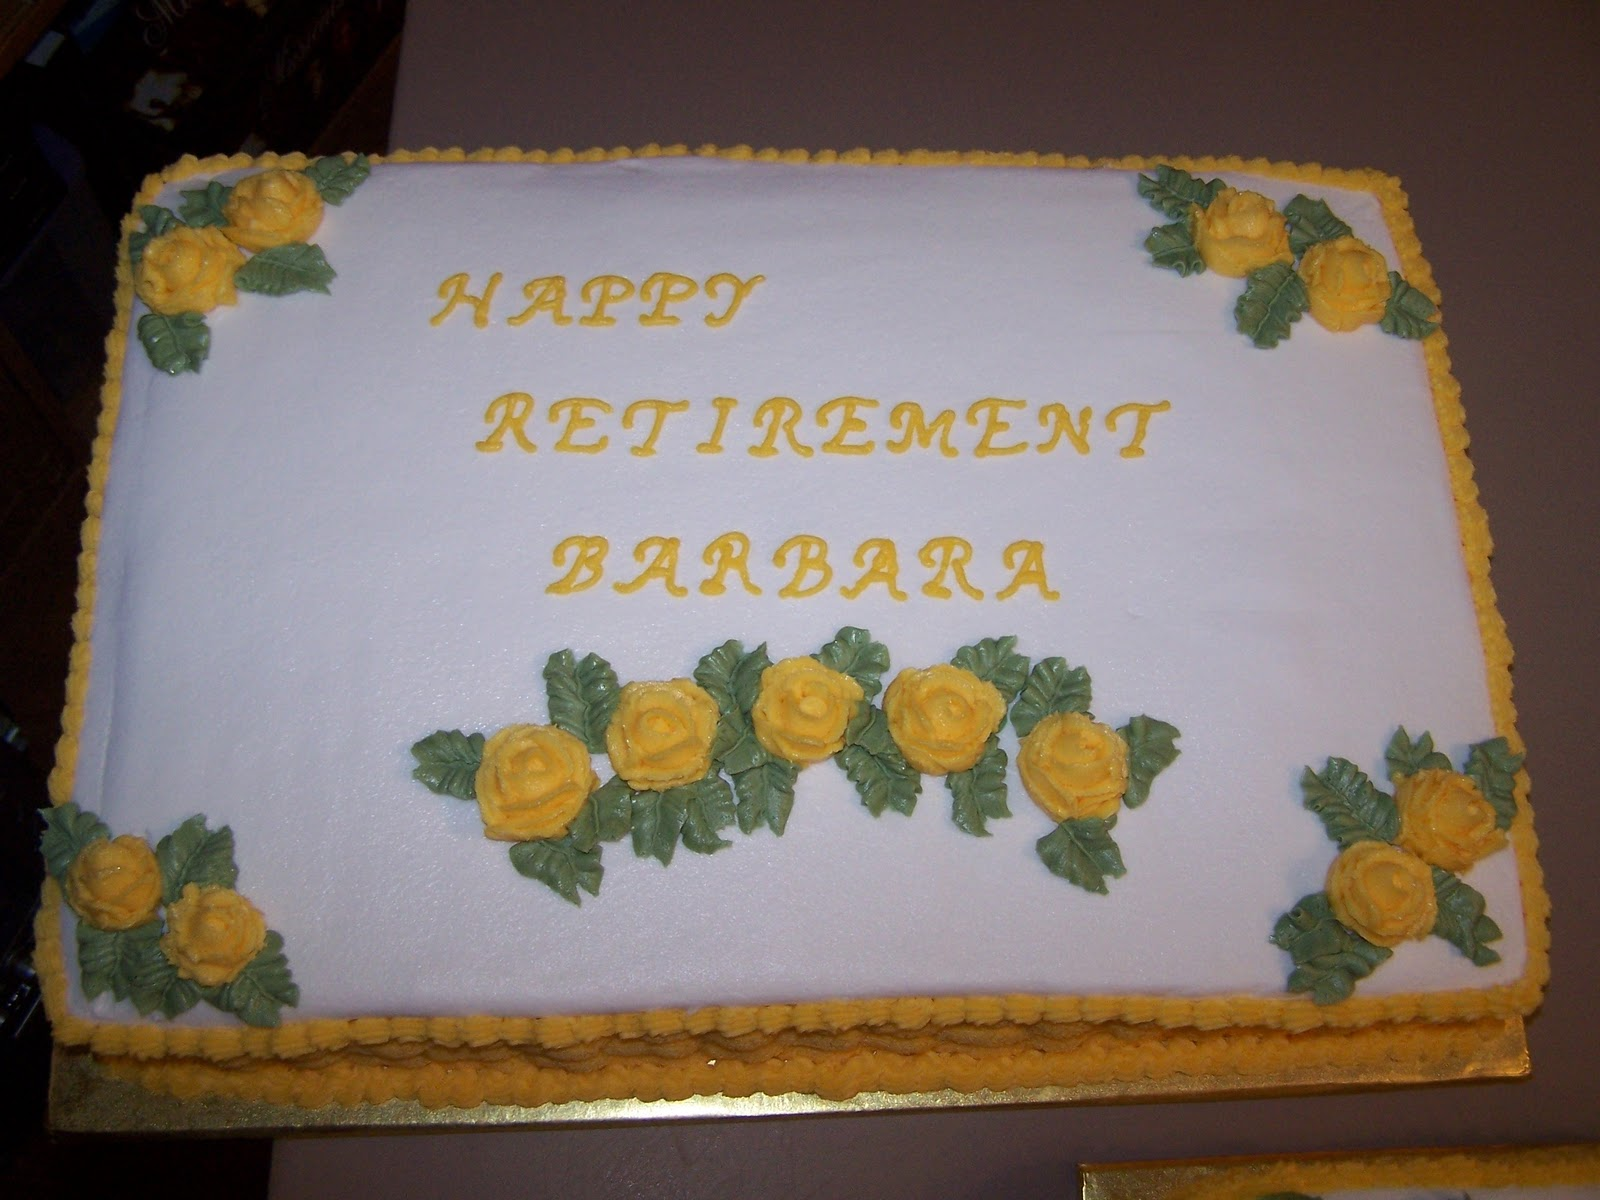 Cake Decorating Ideas Retirement